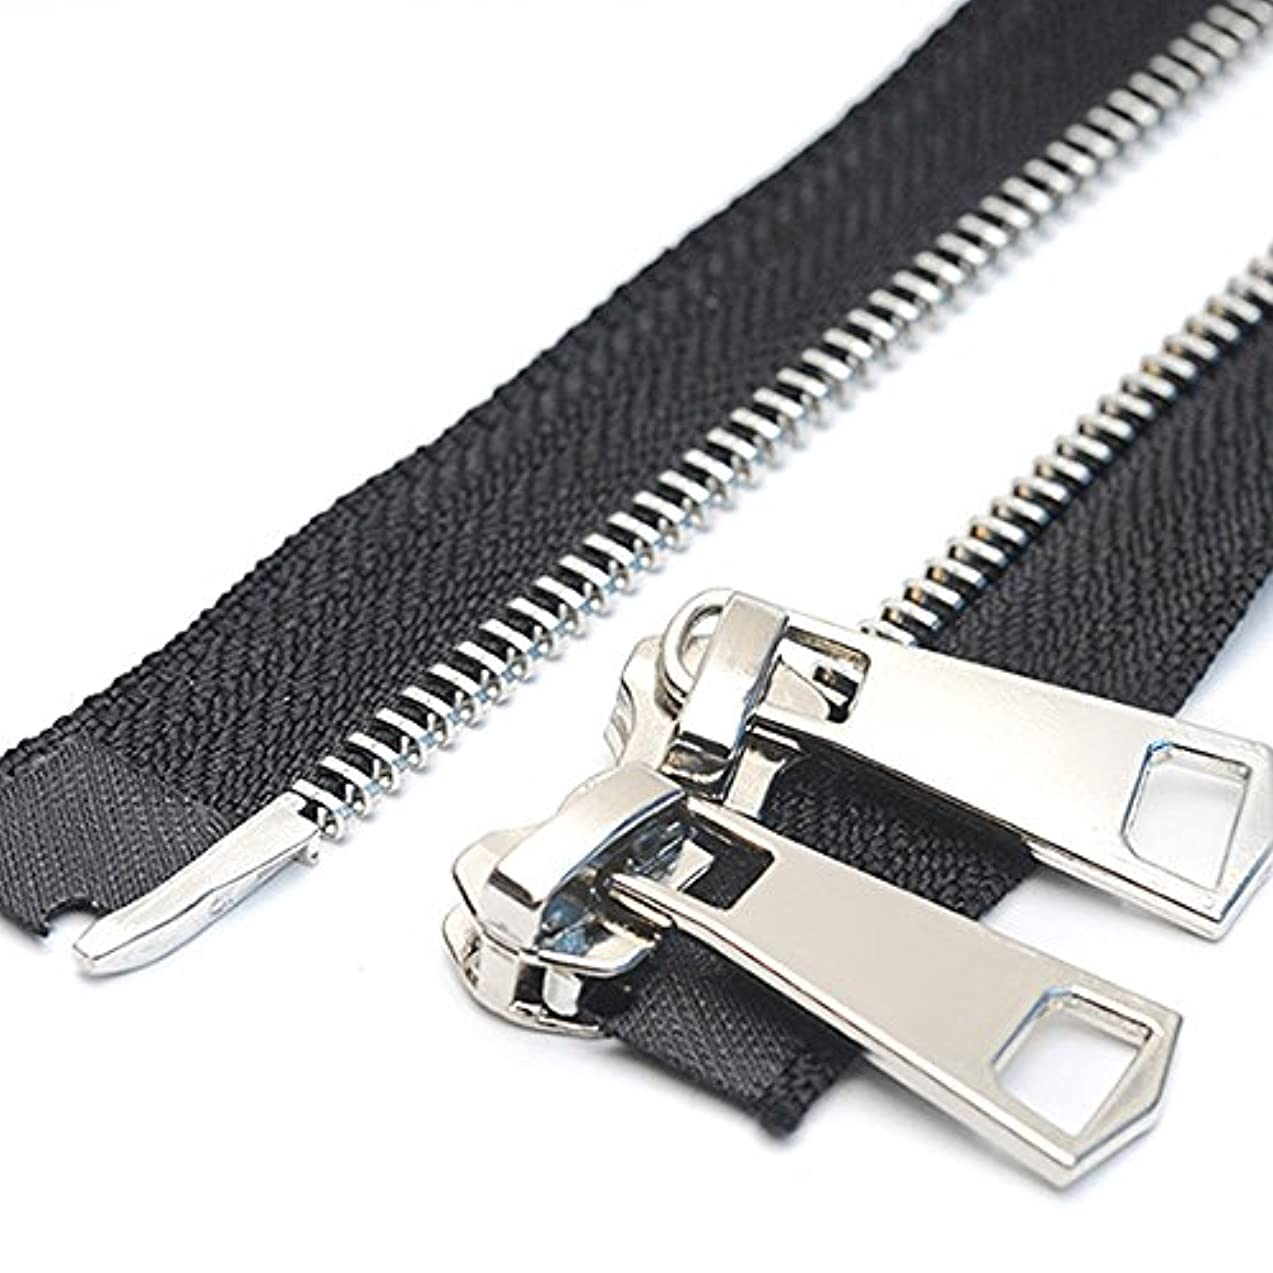 YaHoGa #5 36 Inch Two Way Separating Jacket Zipper Silver Metal Zippers for Jackets Coats Sewing Crafts (36